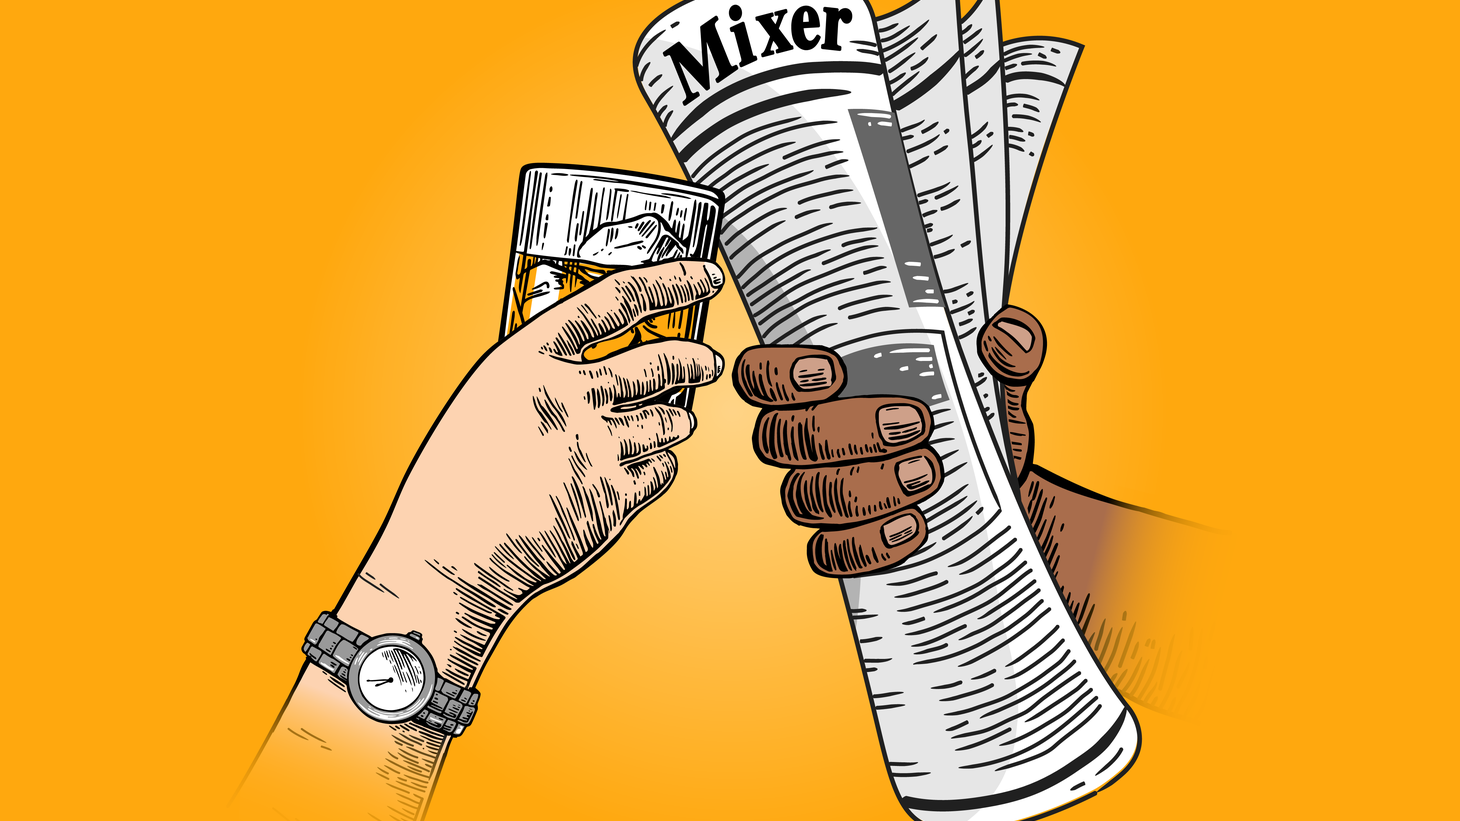 Paul Pringle of the Los Angeles Times and Jeremy White of the Sacramento Bee join KCRW's Steve Chiotakis for this week's Mixer.